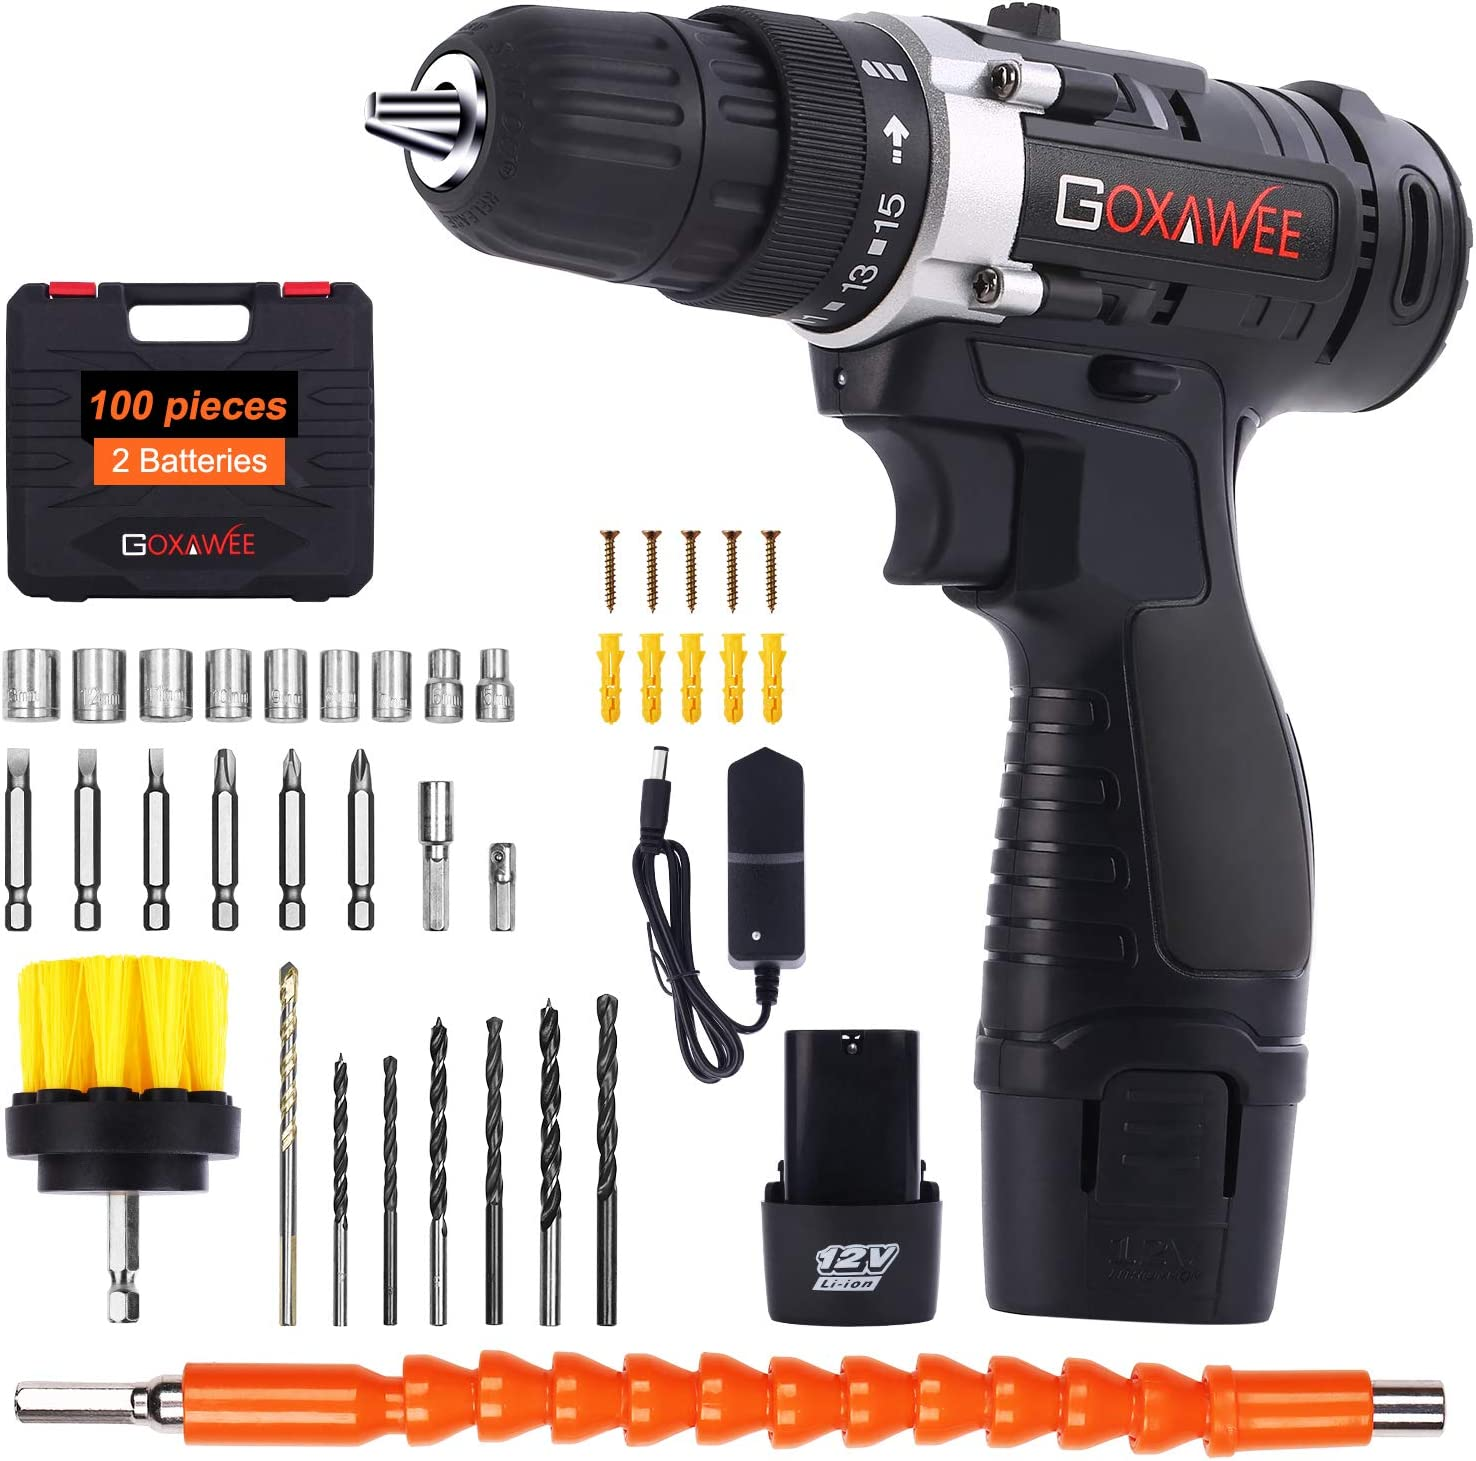 Goxawee Cordless Drill Screwdriver